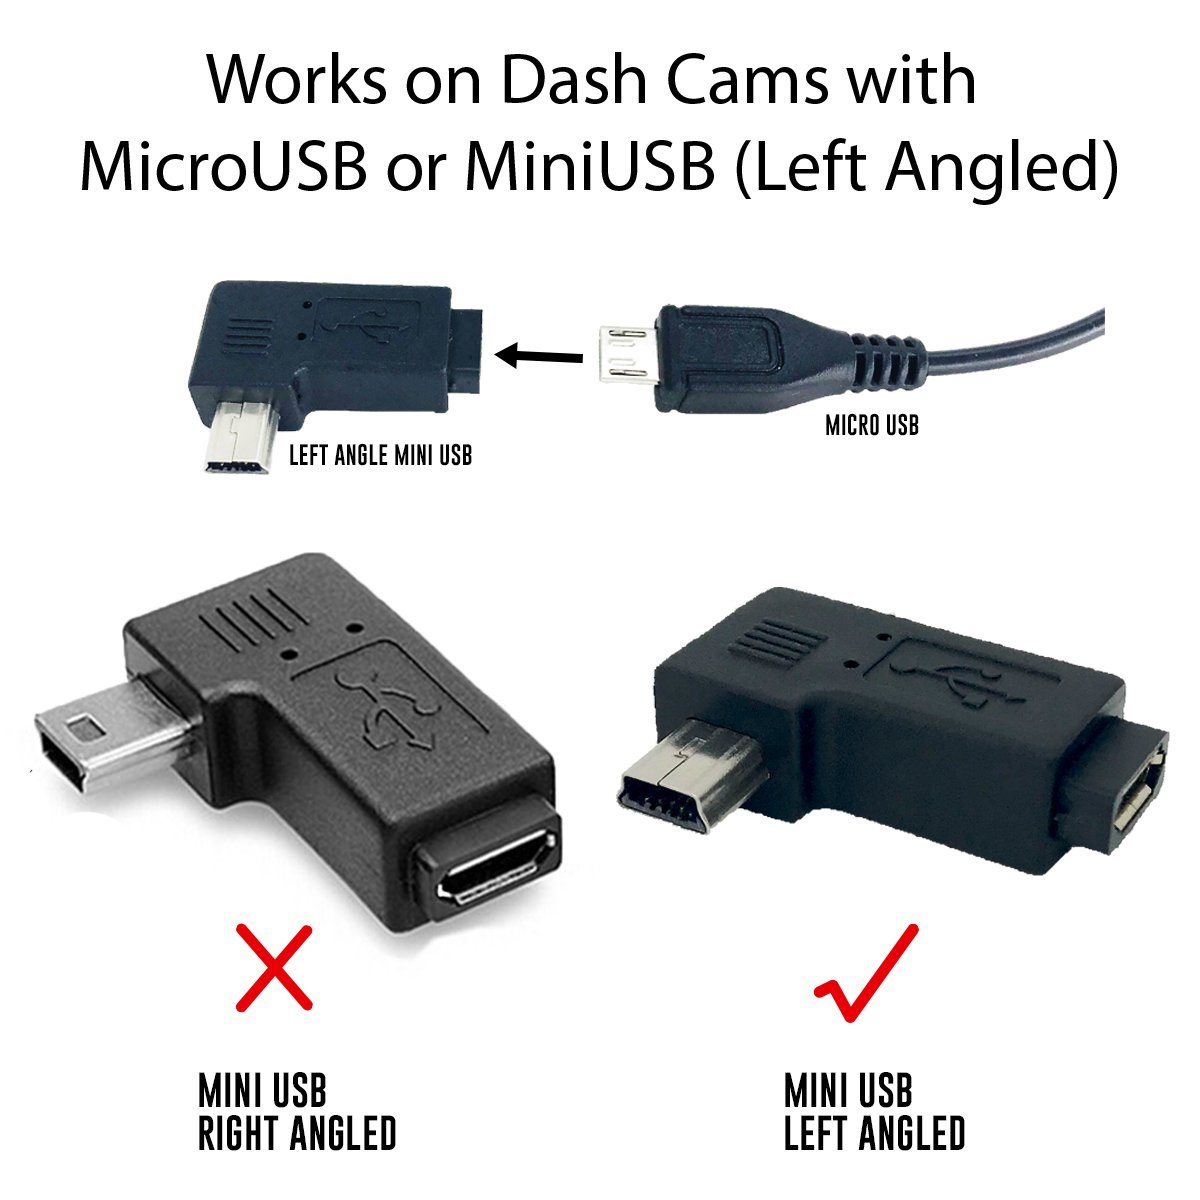 15ft Microusb Miniusb Dash Cam Hardwire Kit With Mini 1996 Ford Van Fuse Box Under Lp Ato Micro2 Micro To And Type C Port Adapters Battery Drain